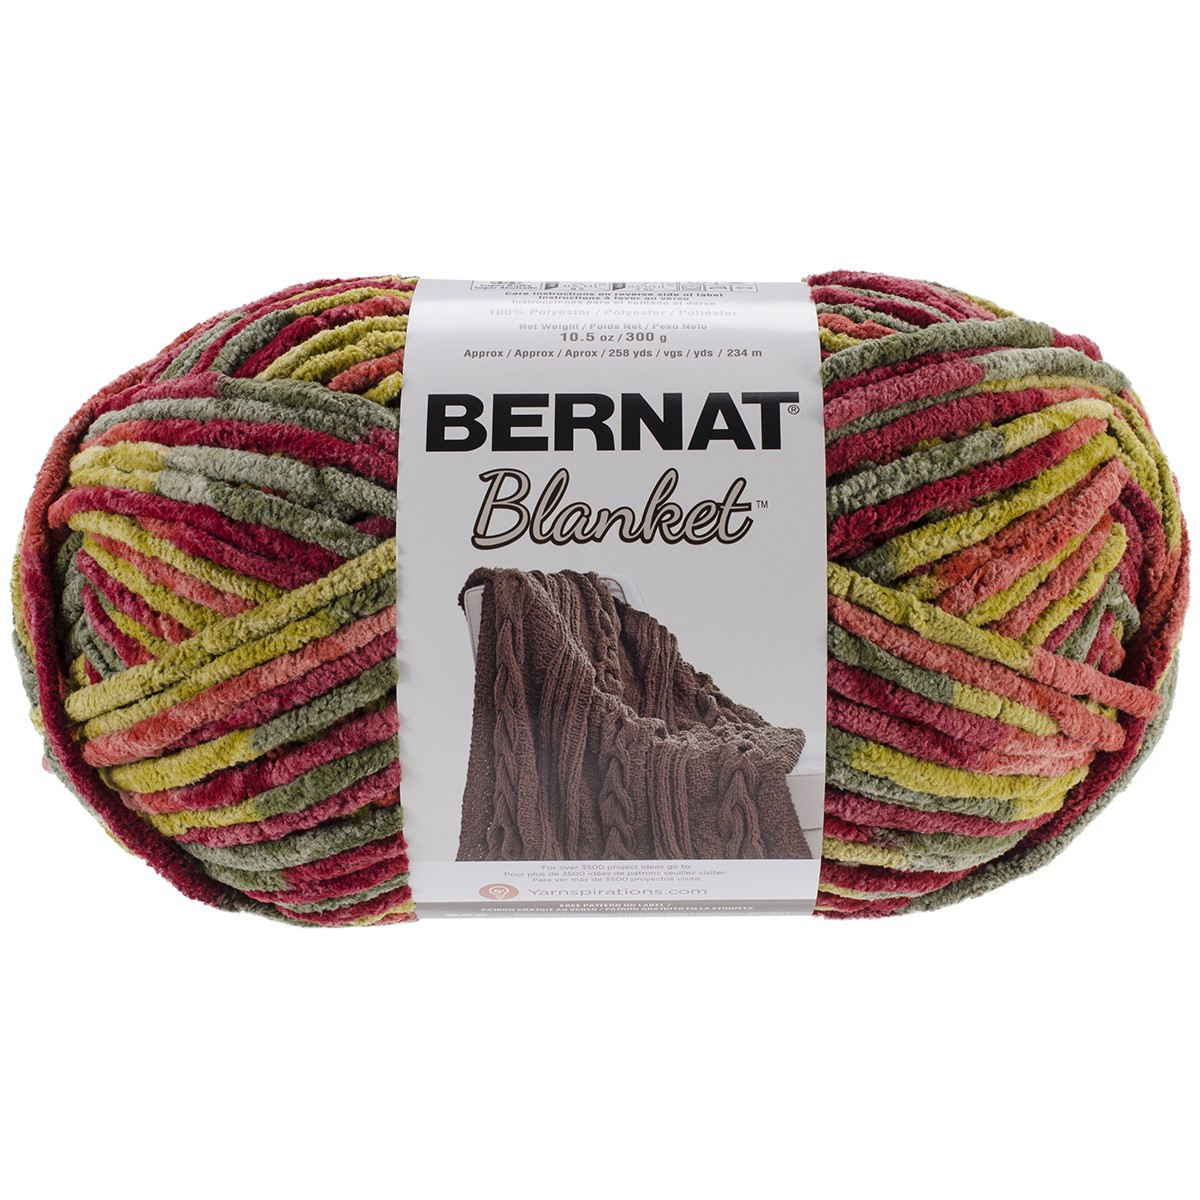 Bernat Chunky Yarn Big Ball Lovely Bernat Blanket Big Ball Yarn Harvest Of Top 43 Pictures Bernat Chunky Yarn Big Ball